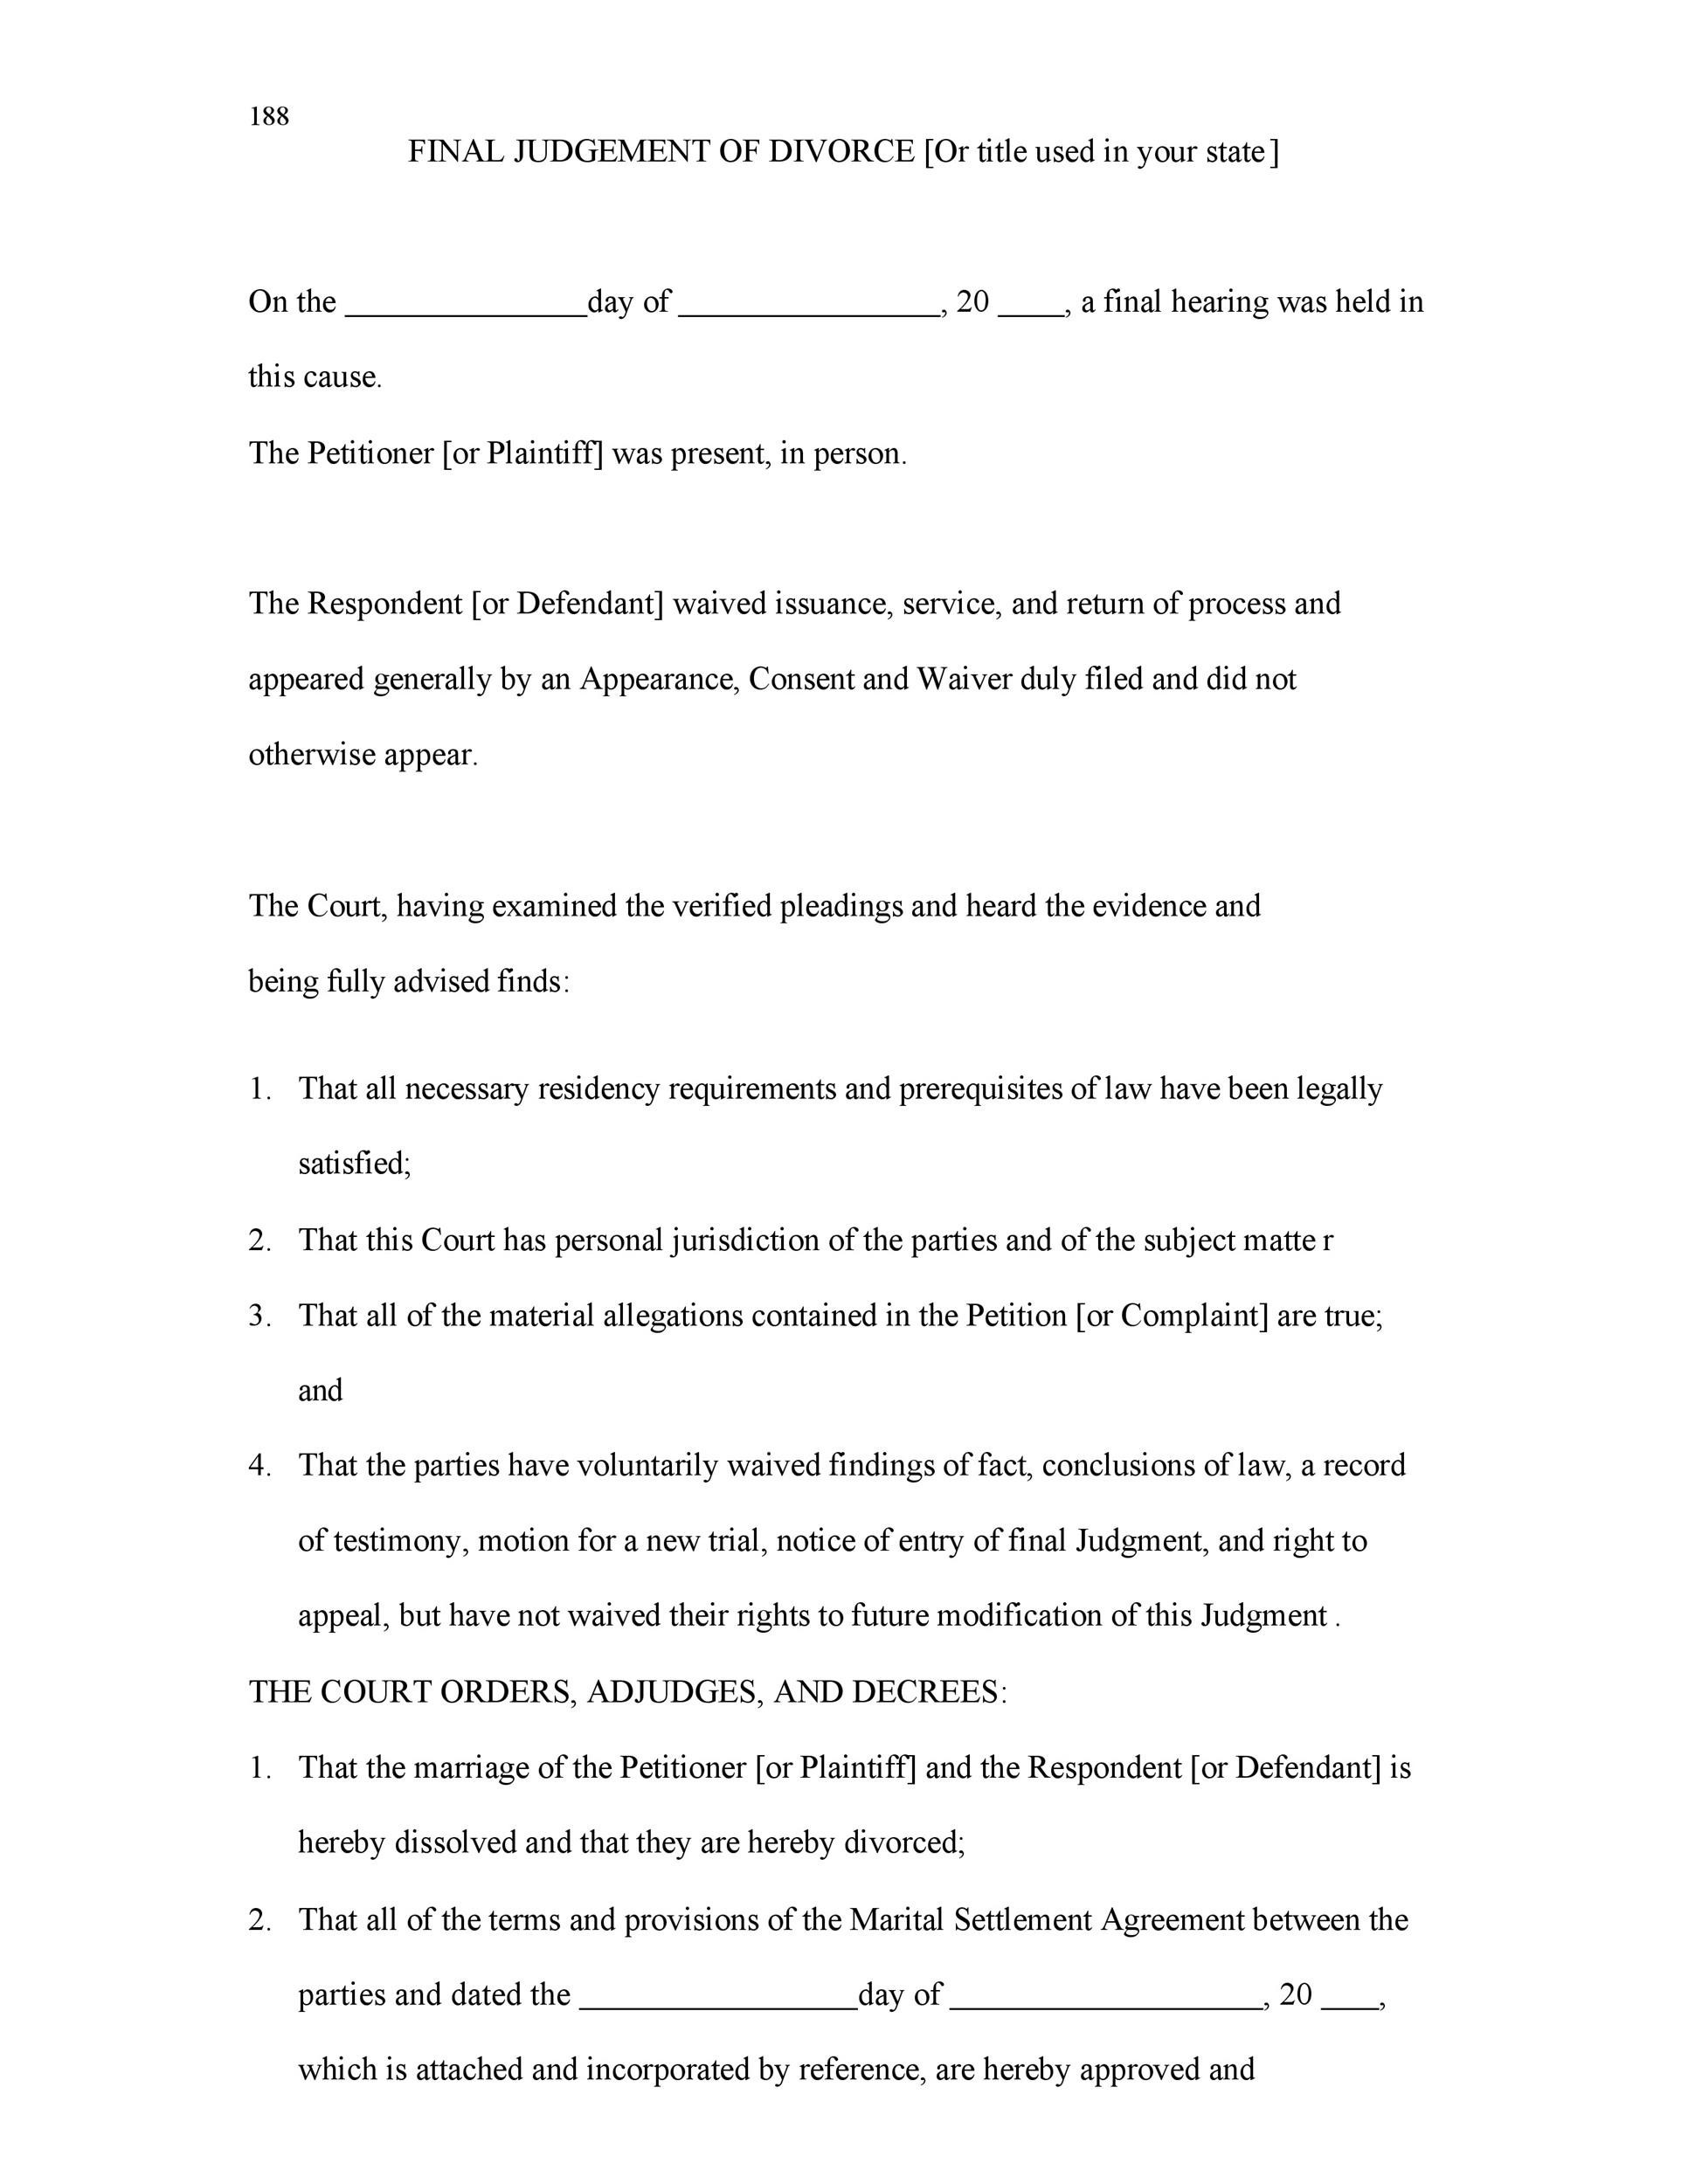 divorce settlement agreement template with sample best business  free divorce papers template